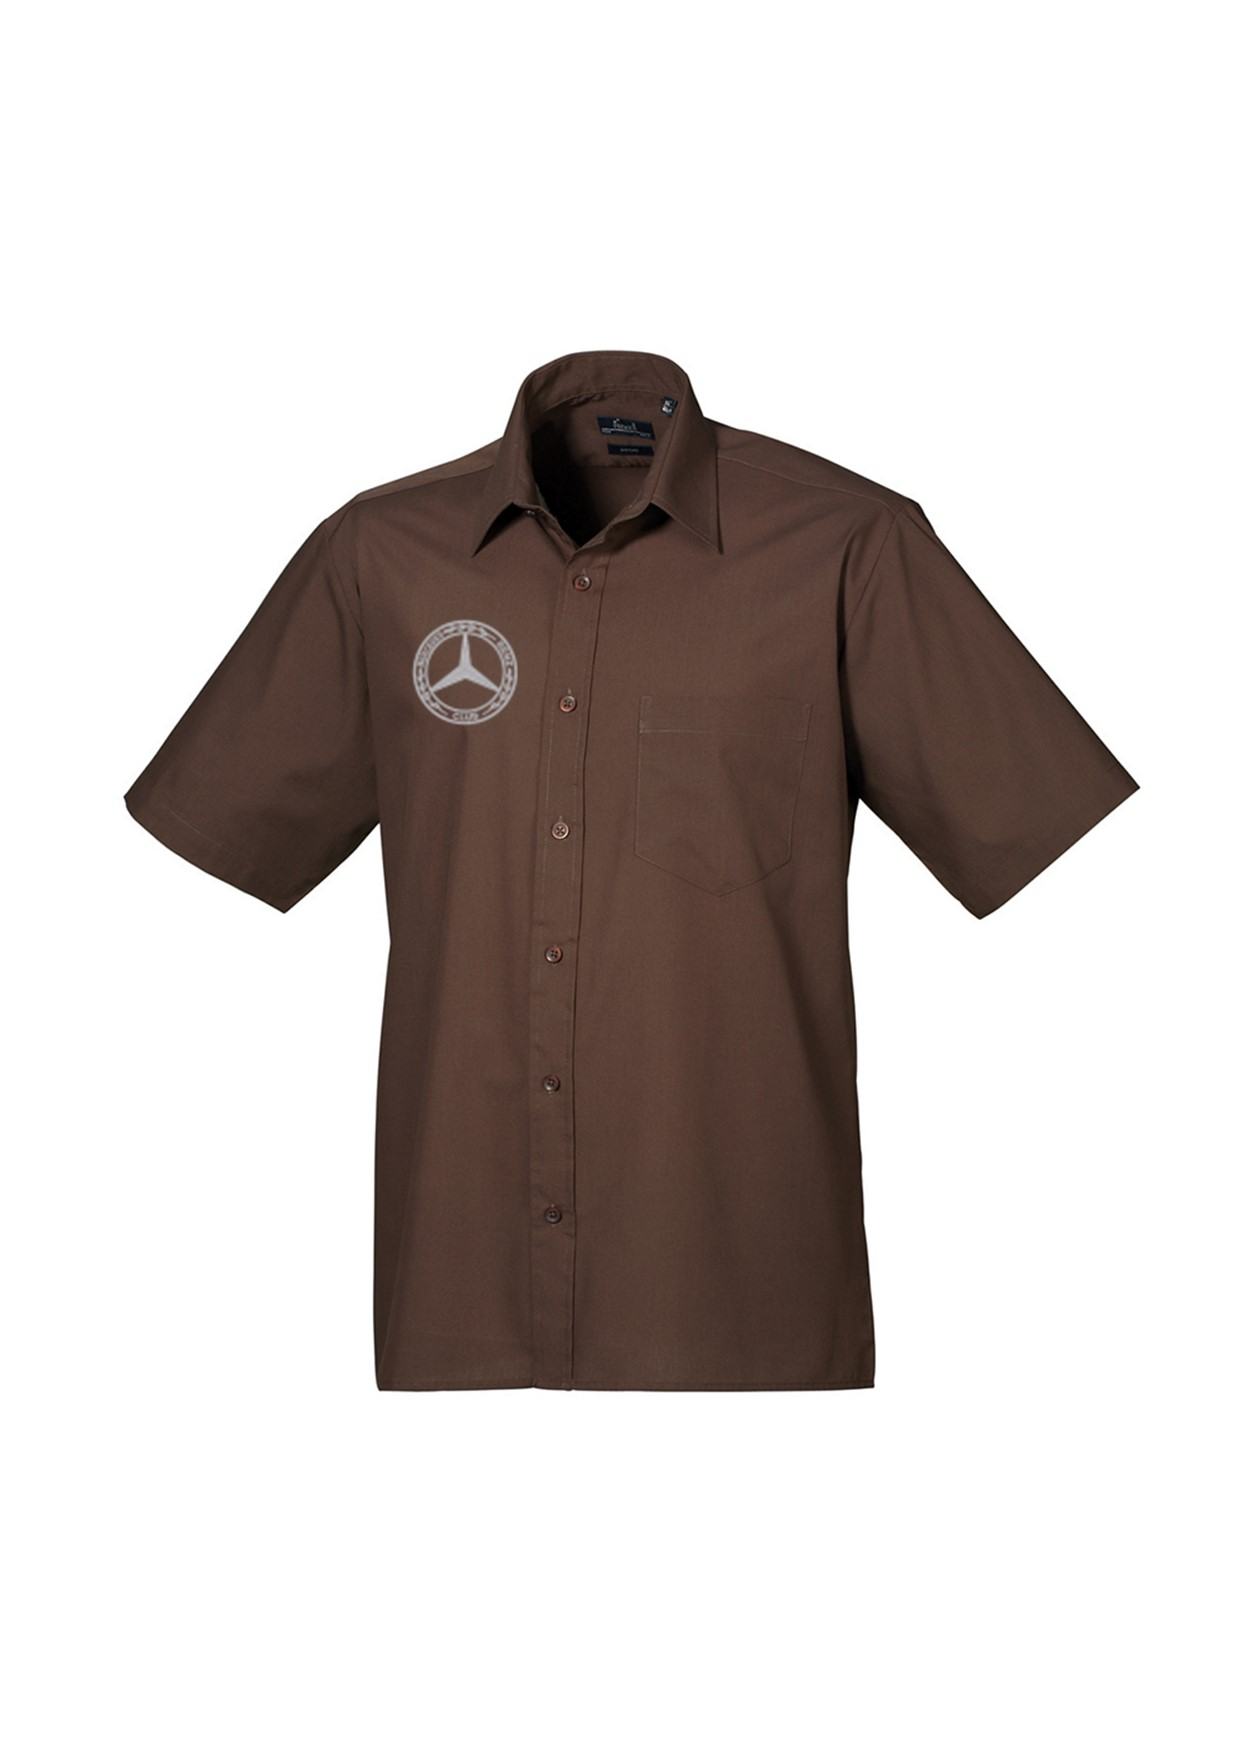 Mercedes-Benz Club Short Sleeved Poplin Shirt Brown